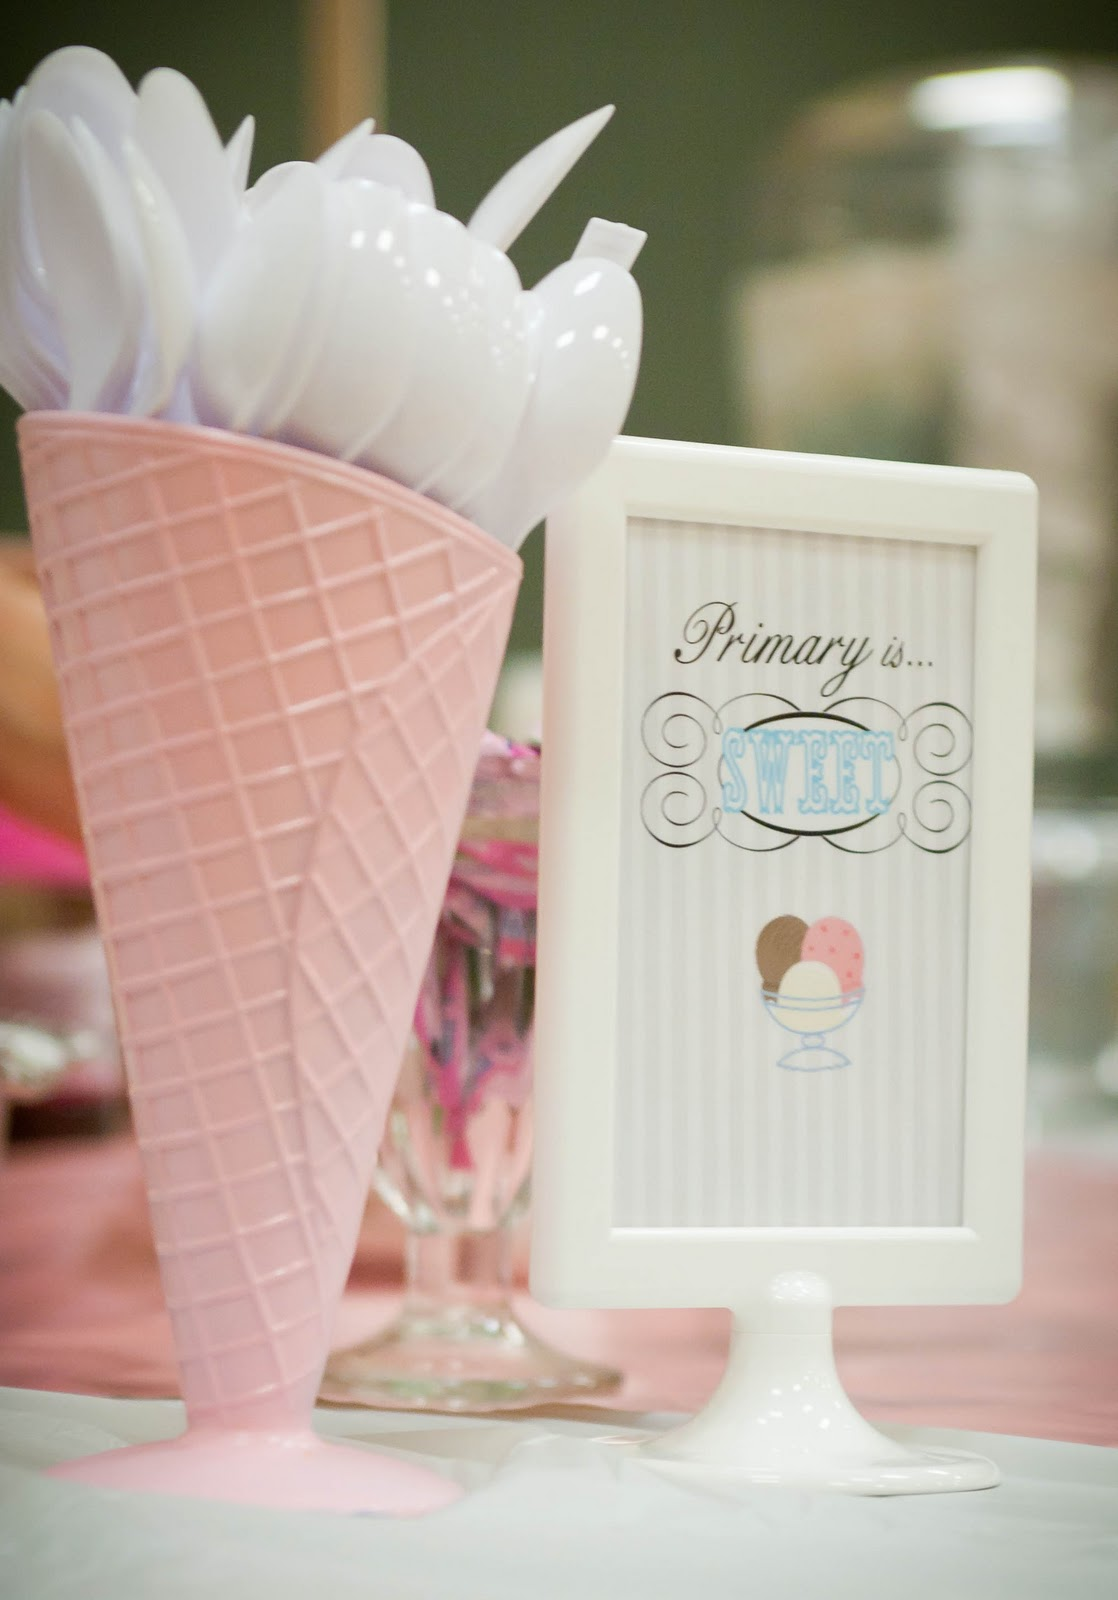 January Decorating Ideas For Classroom ~ Primary ice cream social quot get the scoop on your teacher